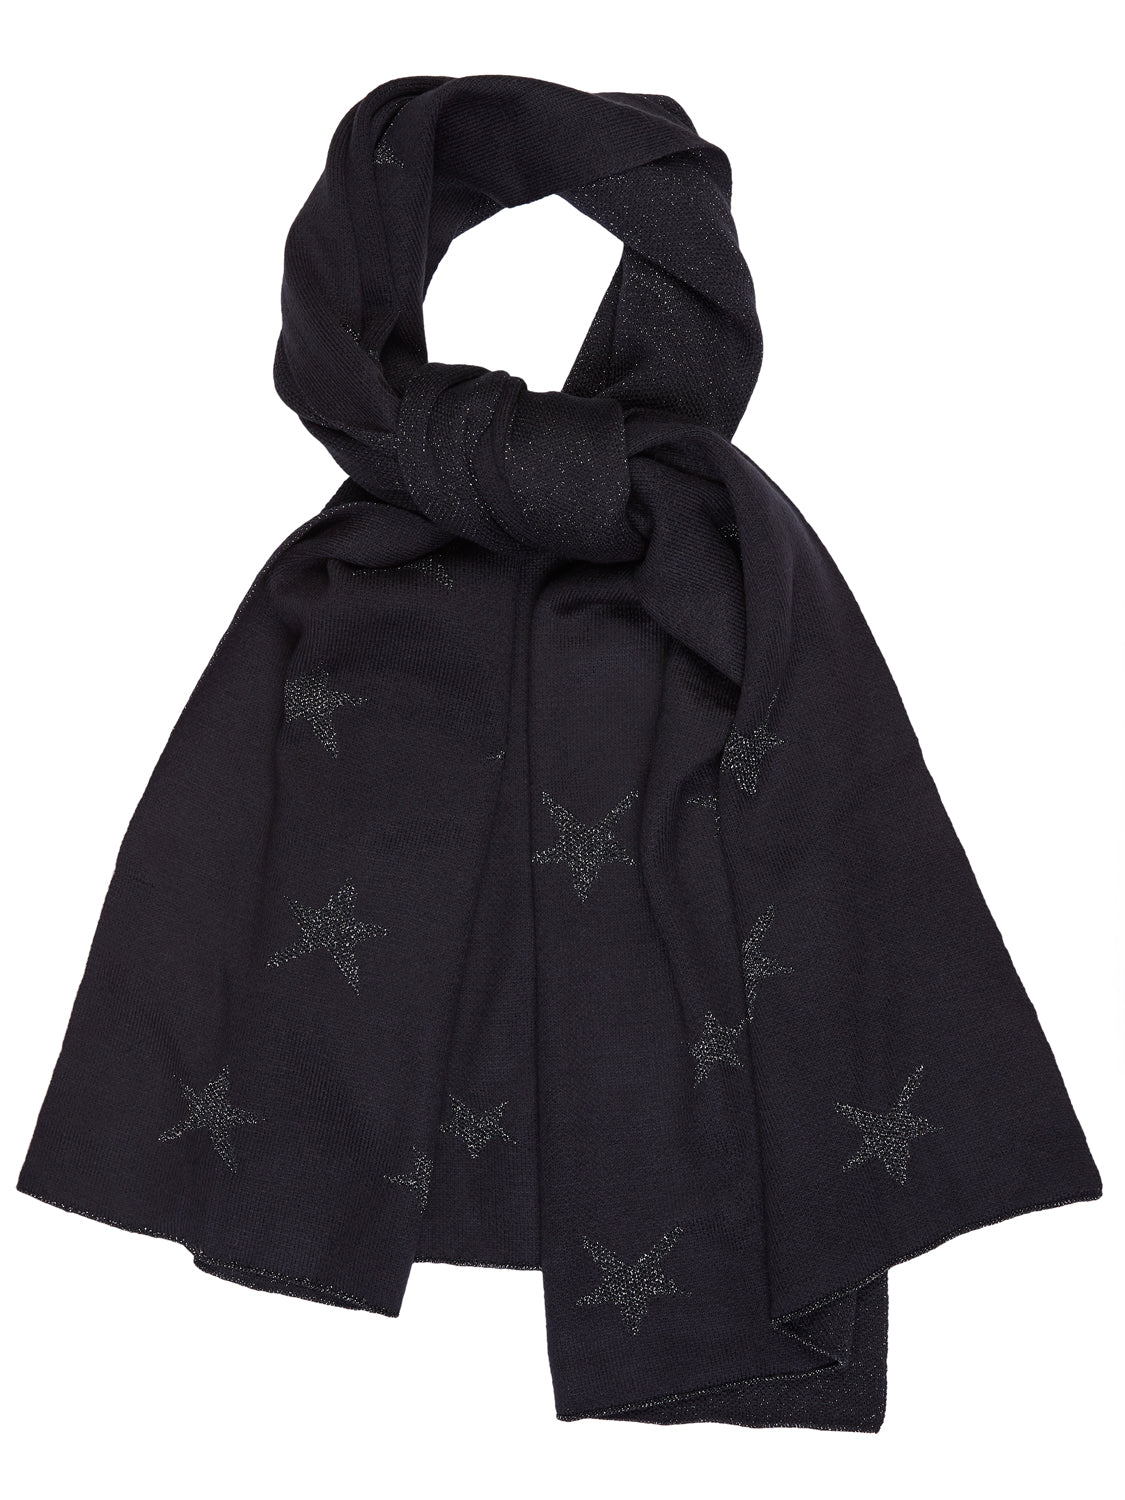 Metallic Star Print Scarf